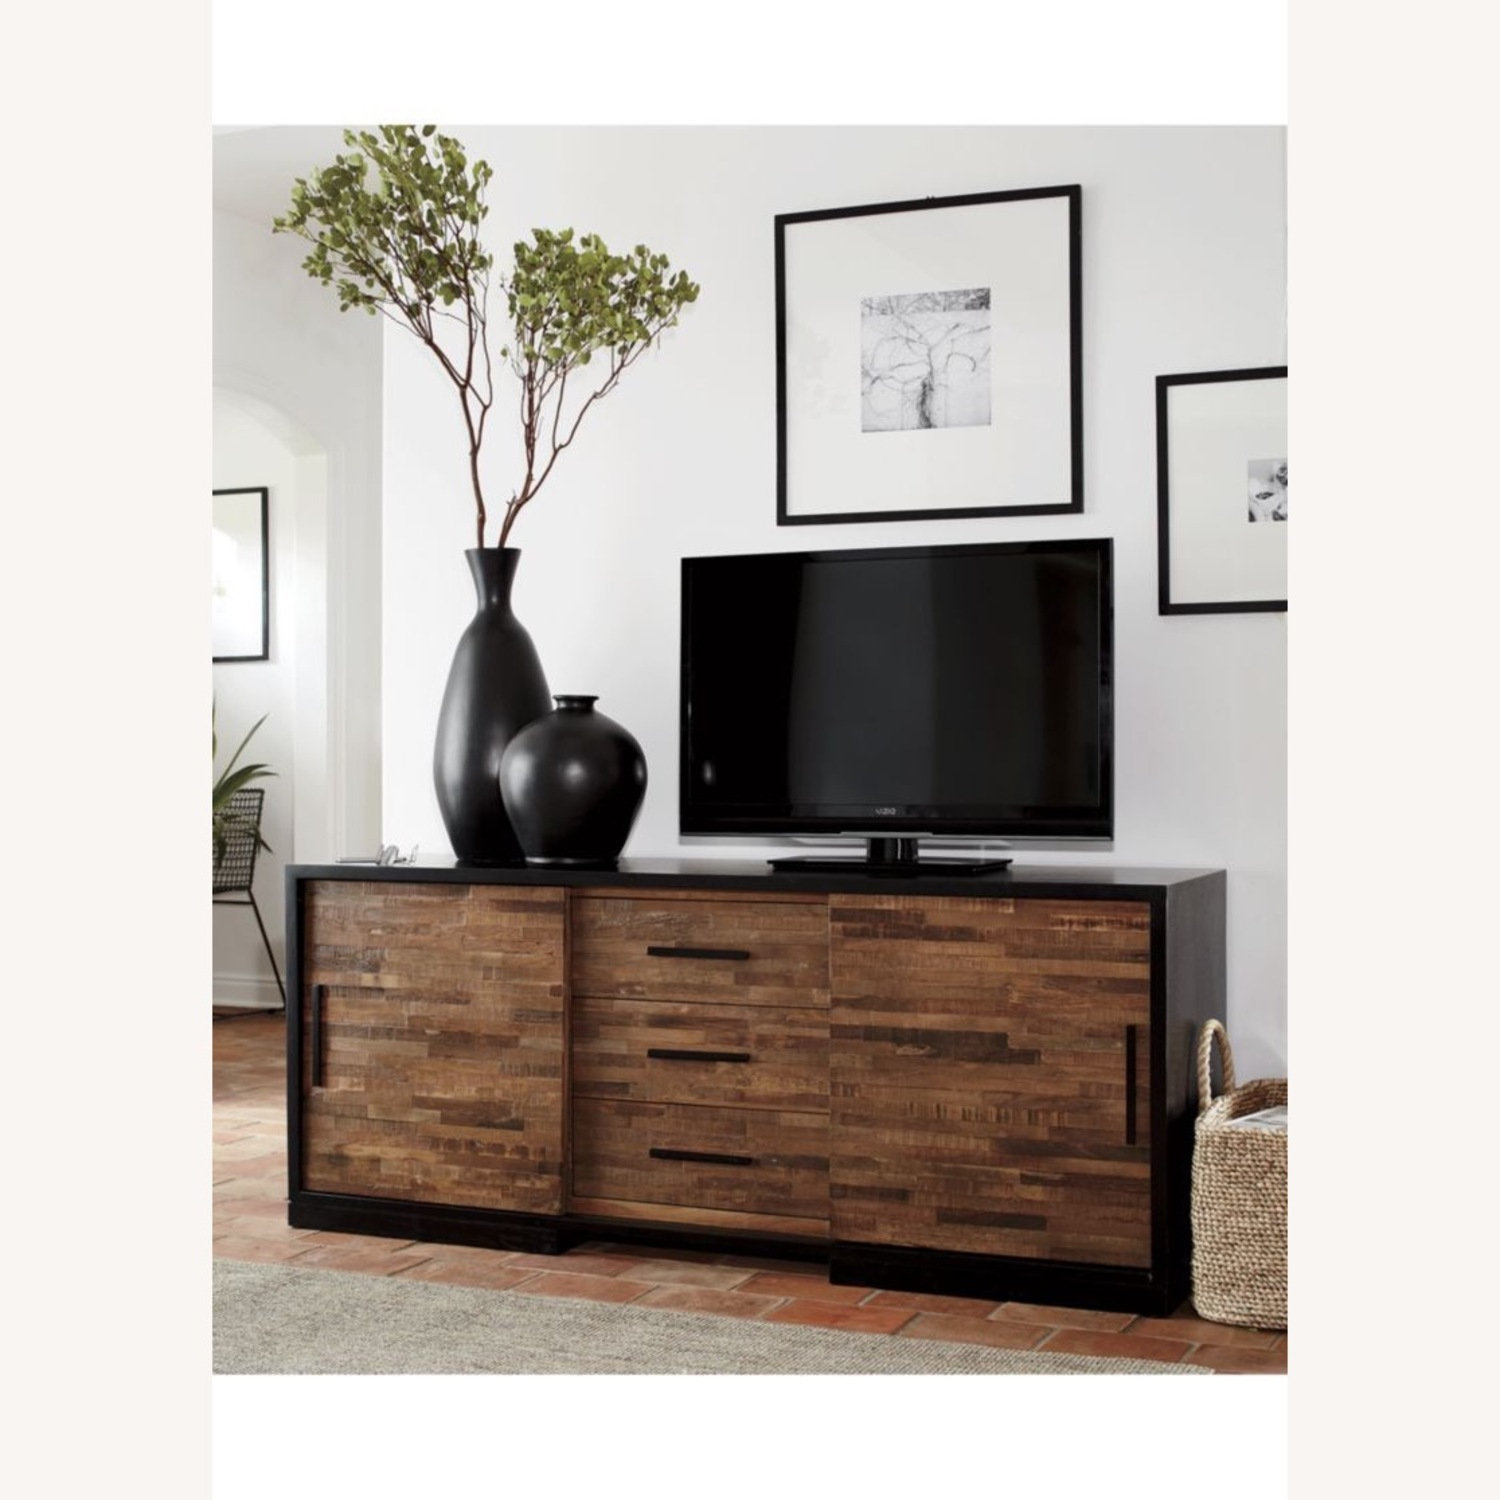 Crate & Barrel Console - image-0